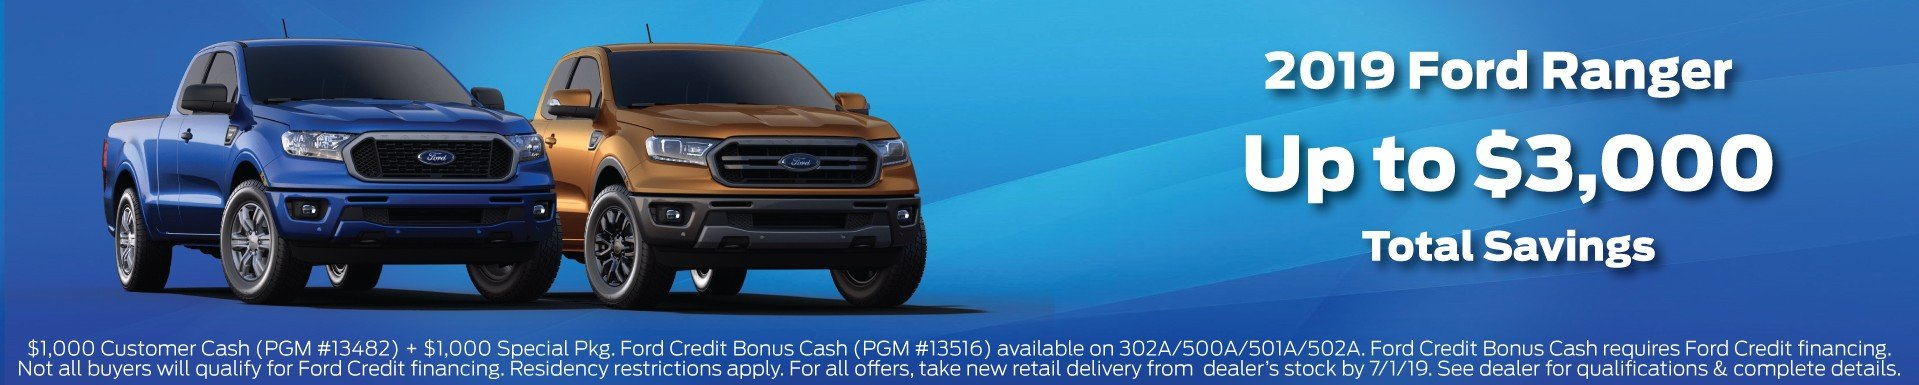 Ford Ranger Incentive 7-1-2019